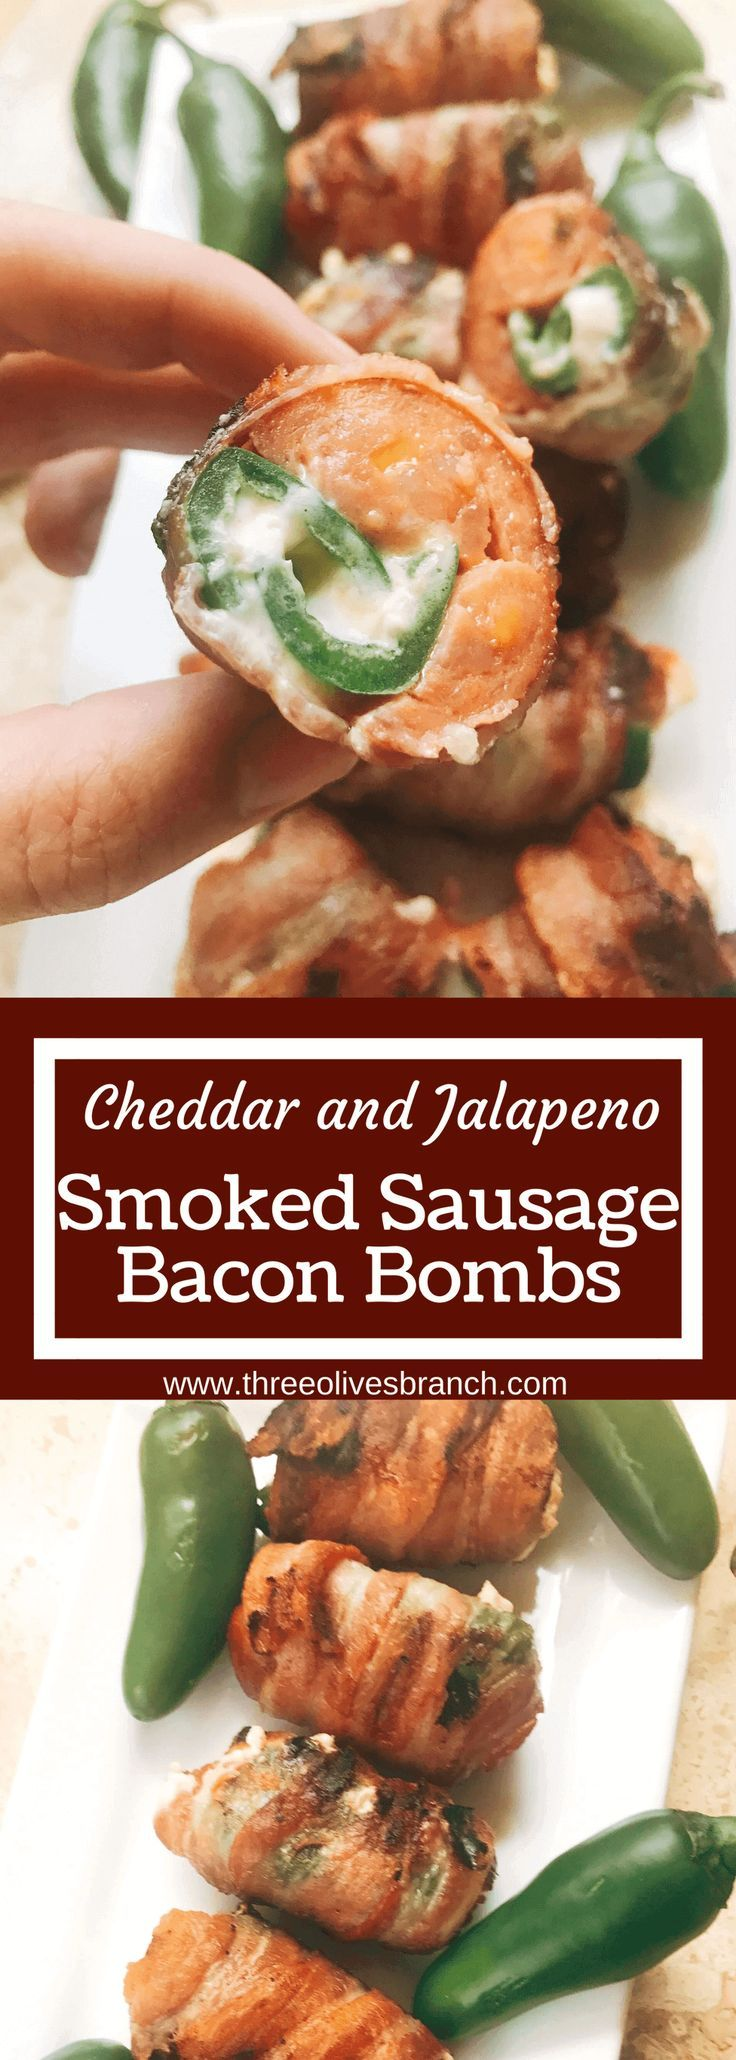 Grill up some of these smoky, cheesy treats for your next summer party. Eckrich Cheddar and Jalapeno Smoked Sausage is stuffed with a jalapeno pepper (which has been filled with cheddar and cream cheese), then rolled in bacon and grilled until crispy. They make such a fun appetizer or dinner for the pork lovers. A fun twist on a jalapeno popper and full of flavor. A great way to kick of football Sunday or game day. Cheddar Jalapeno Smoked Sausage Bacon Bombs #ad...